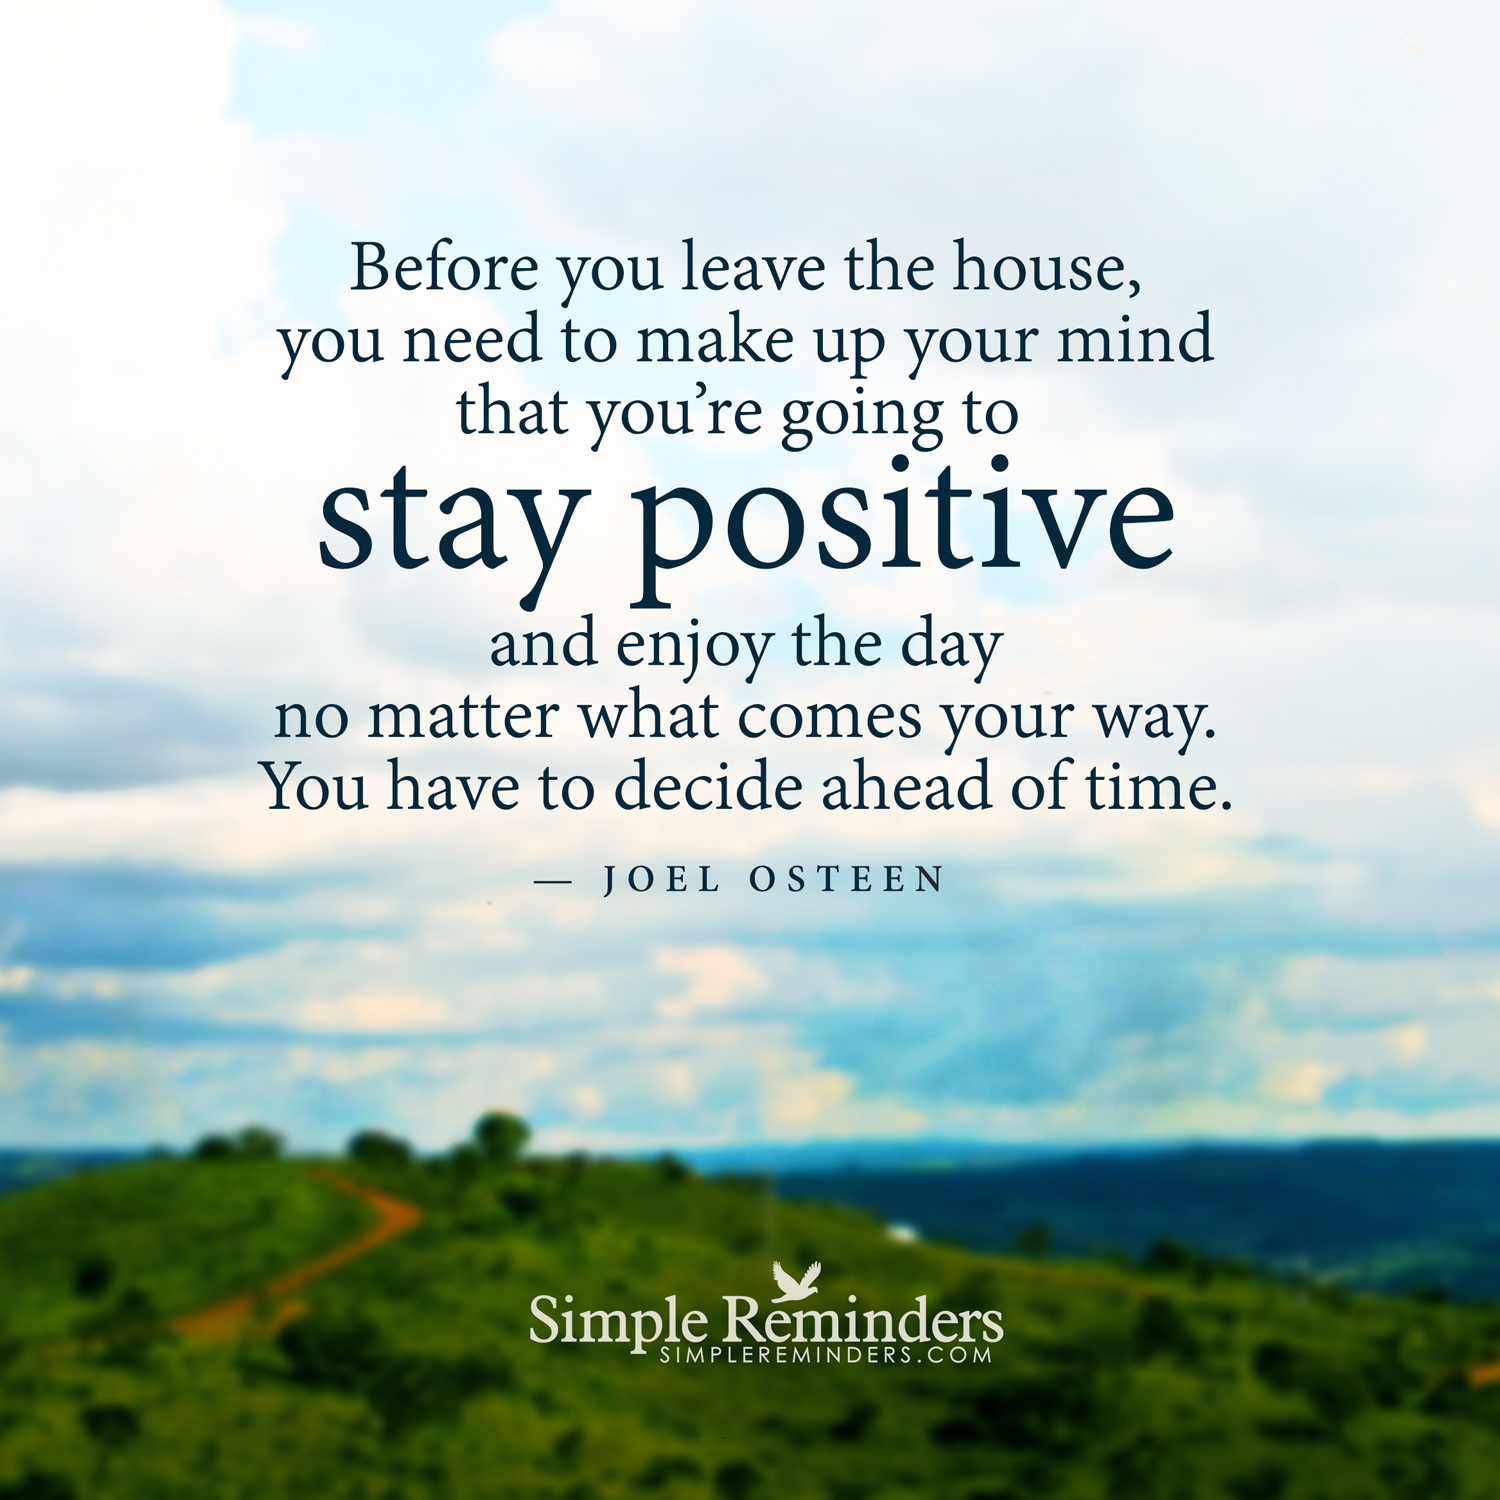 Joel Osteen Quotes On Positive Thinking Quotesgram